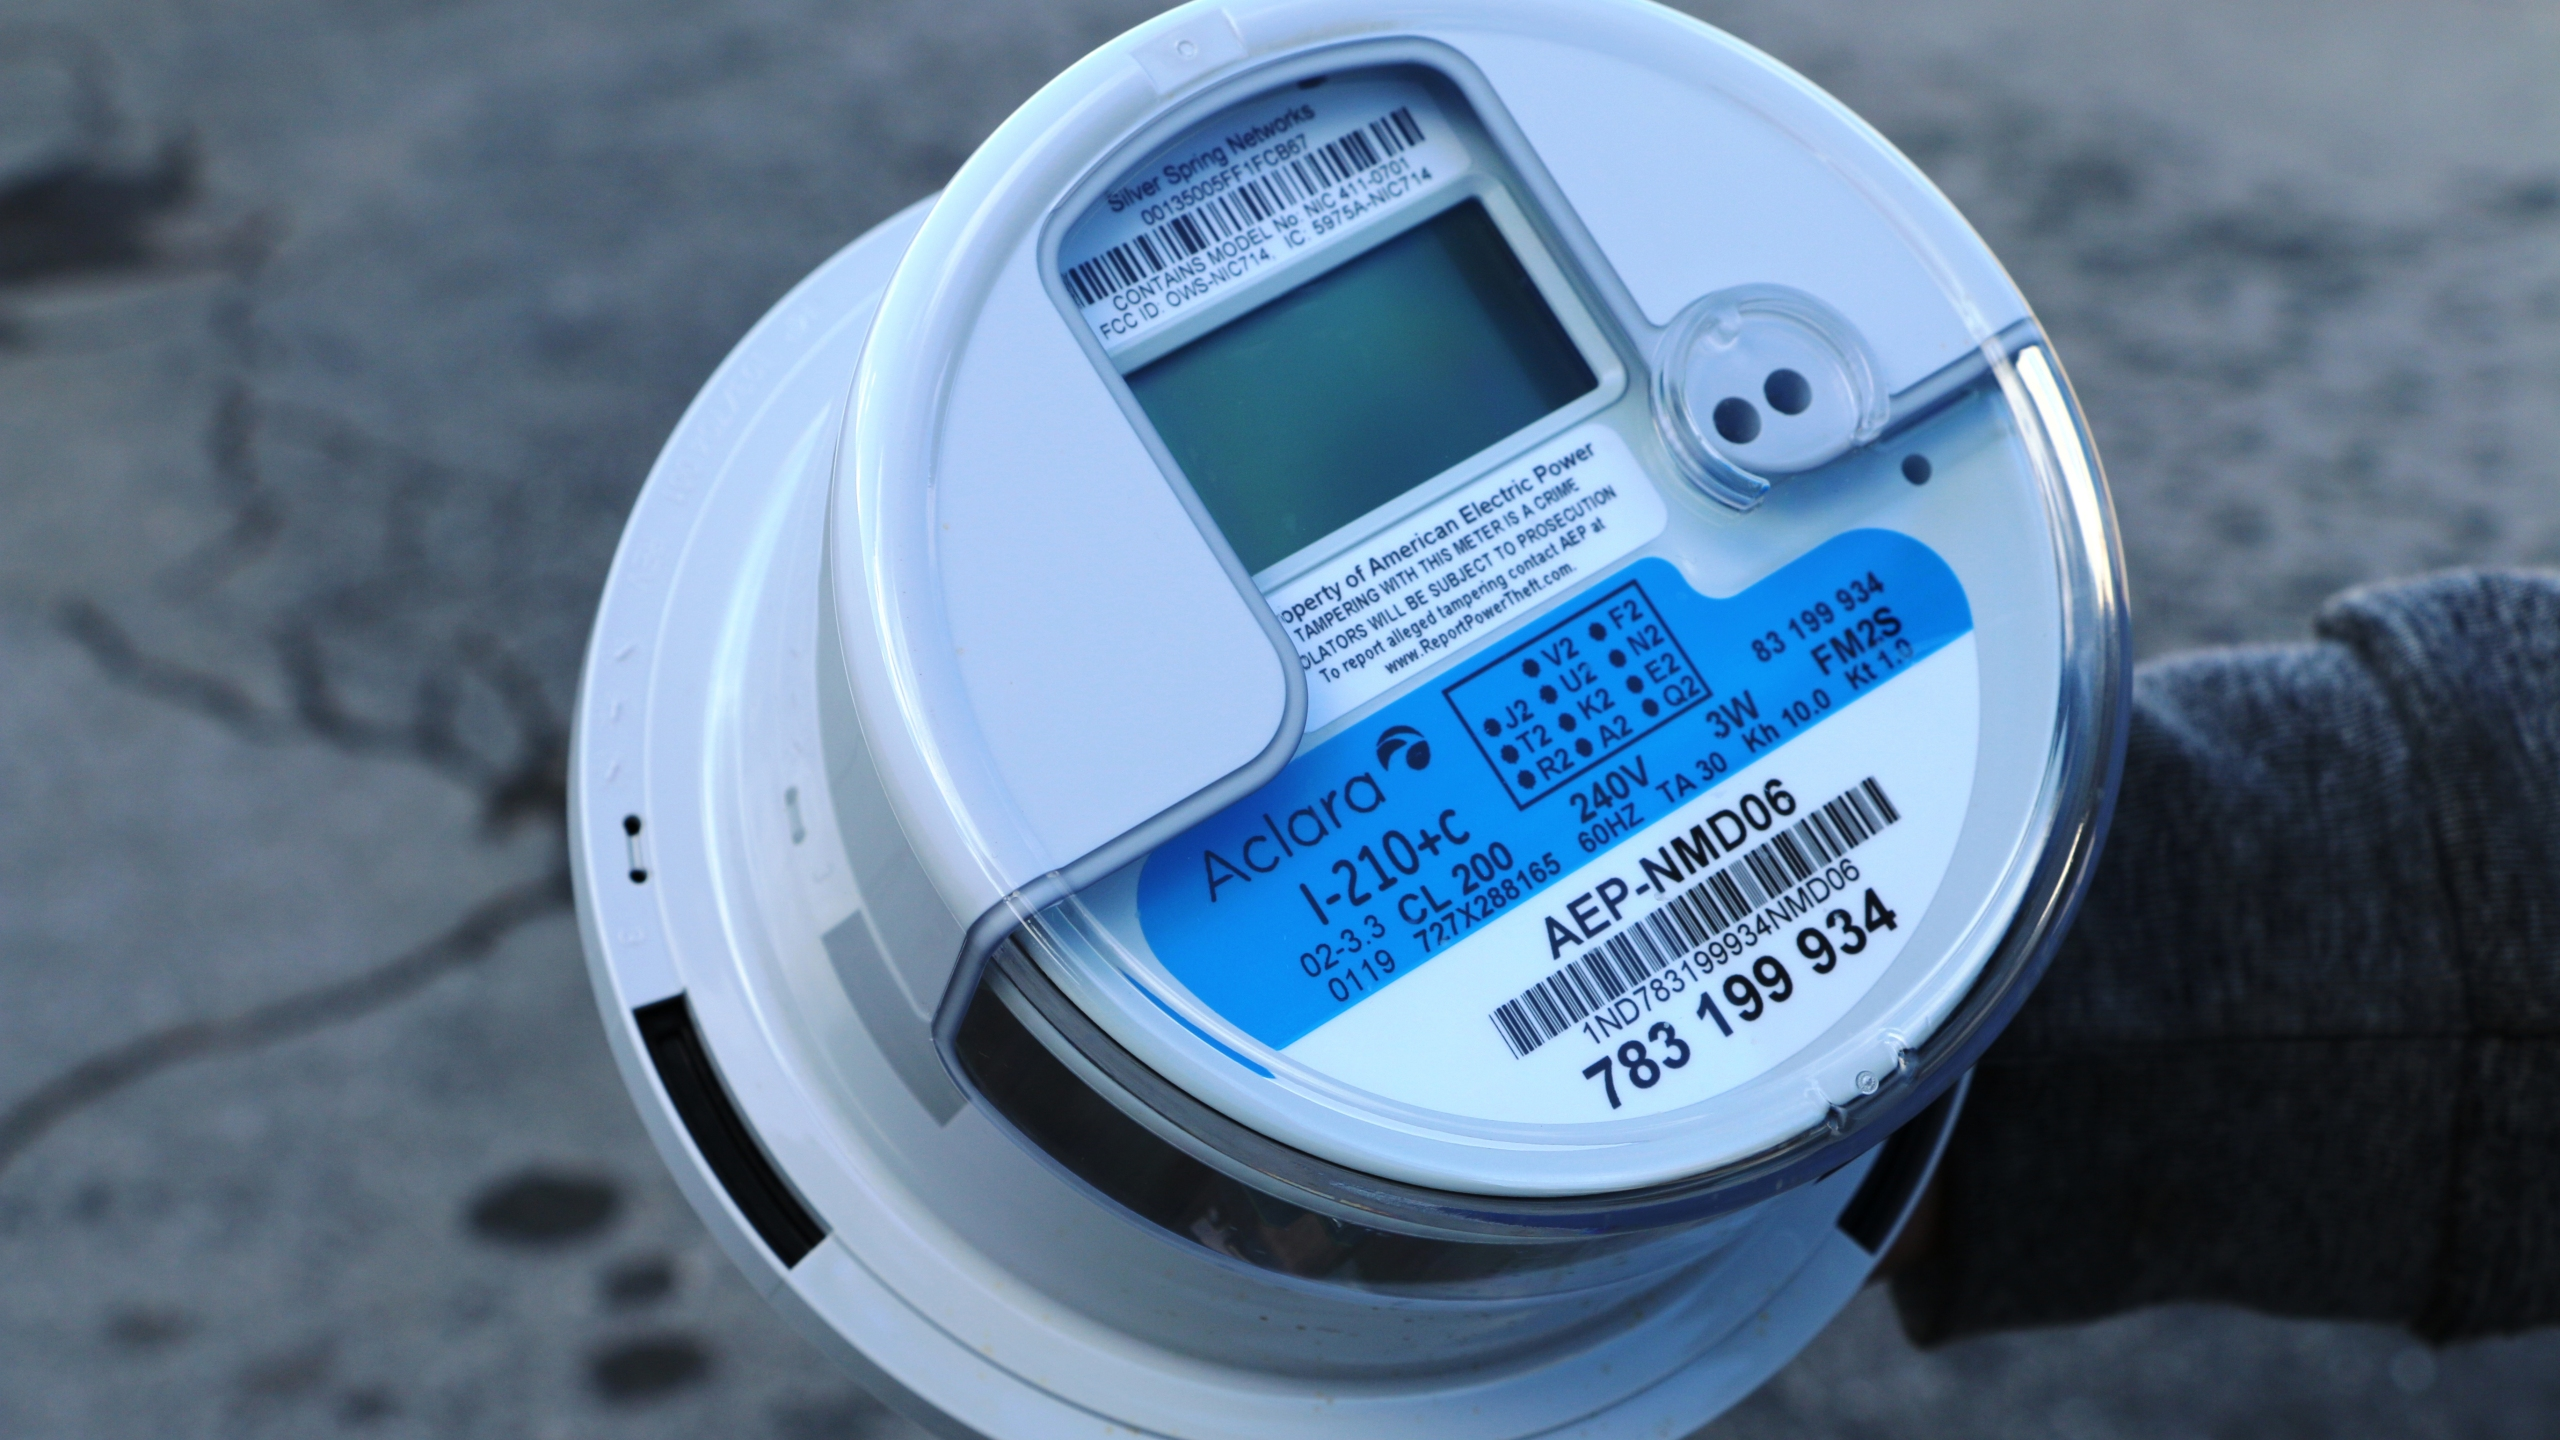 Appalachian Power installing new meters in Kingsport